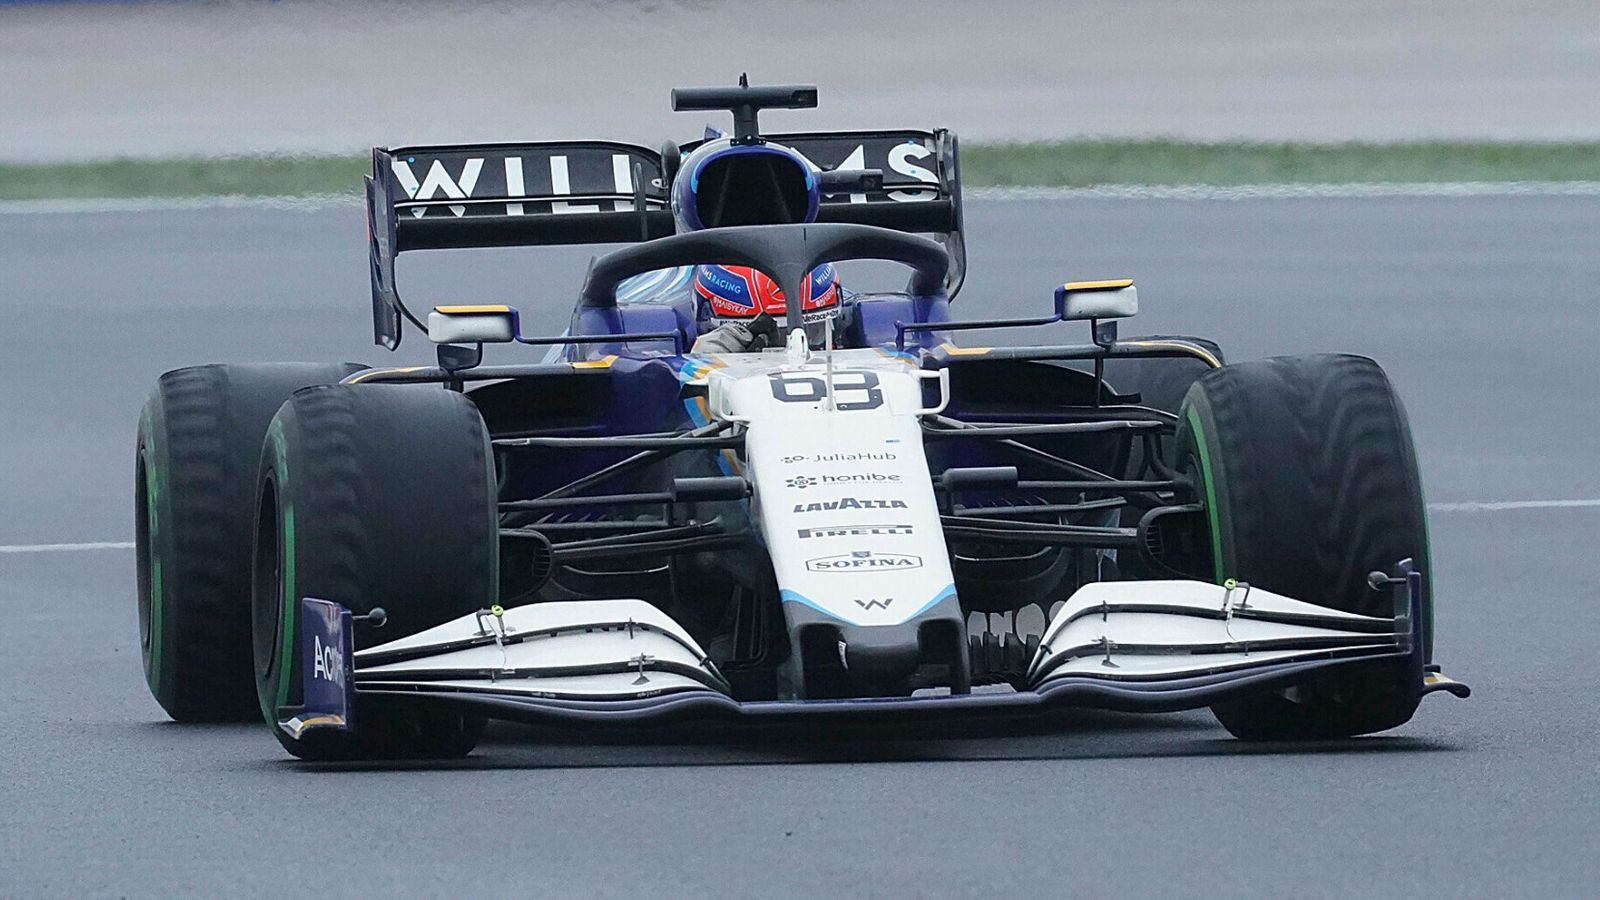 Climate change: Williams Formula 1 team targeting 'sustainable transformation' by 2030